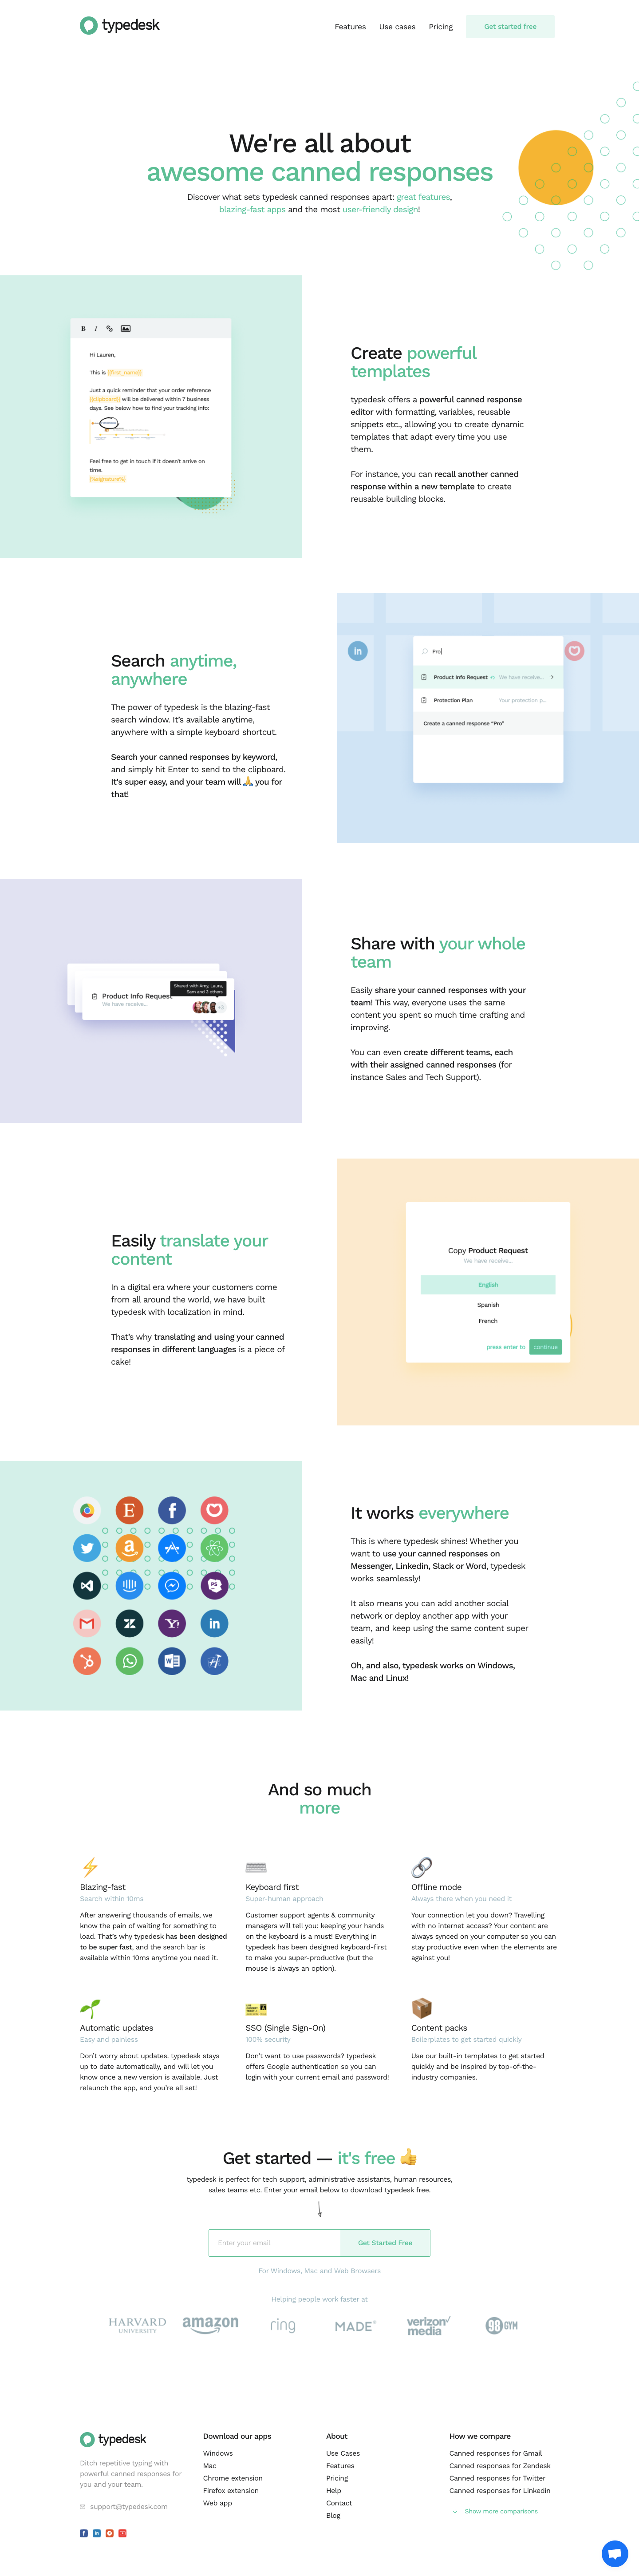 Typedesk Features Page